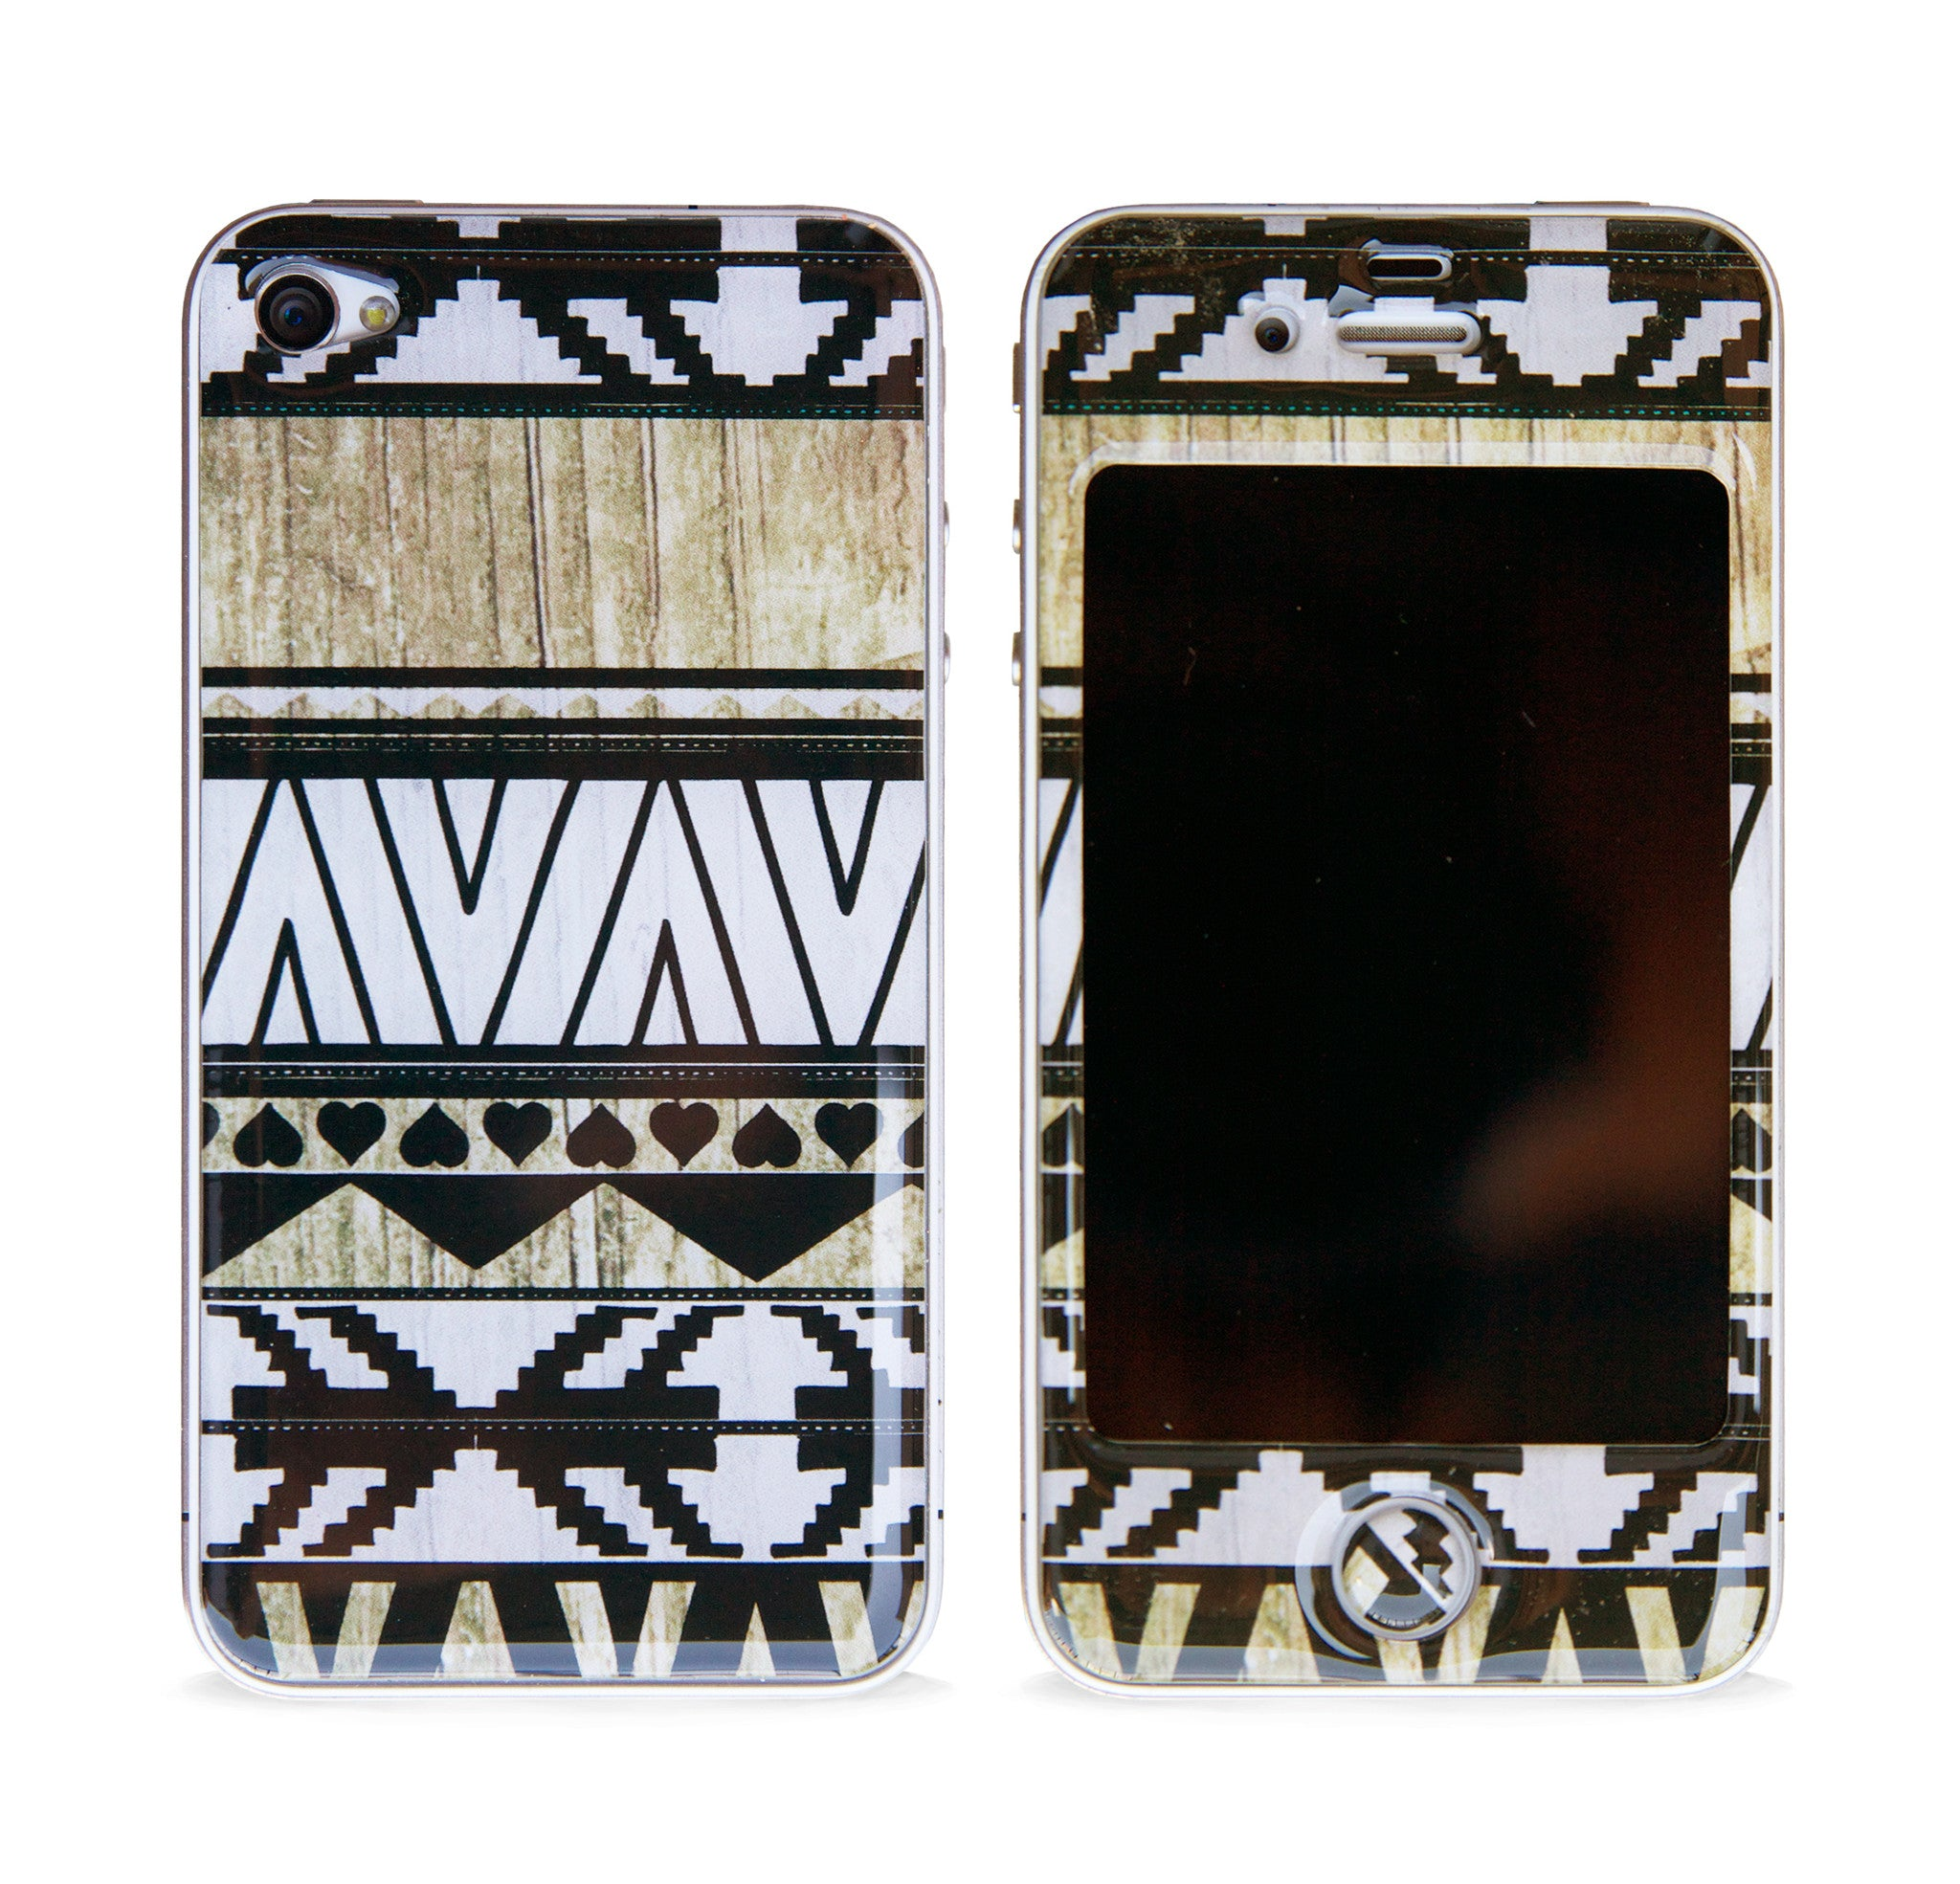 AZTEC WHITE 3D GEL SKIN FOR IPHONE 4/4S